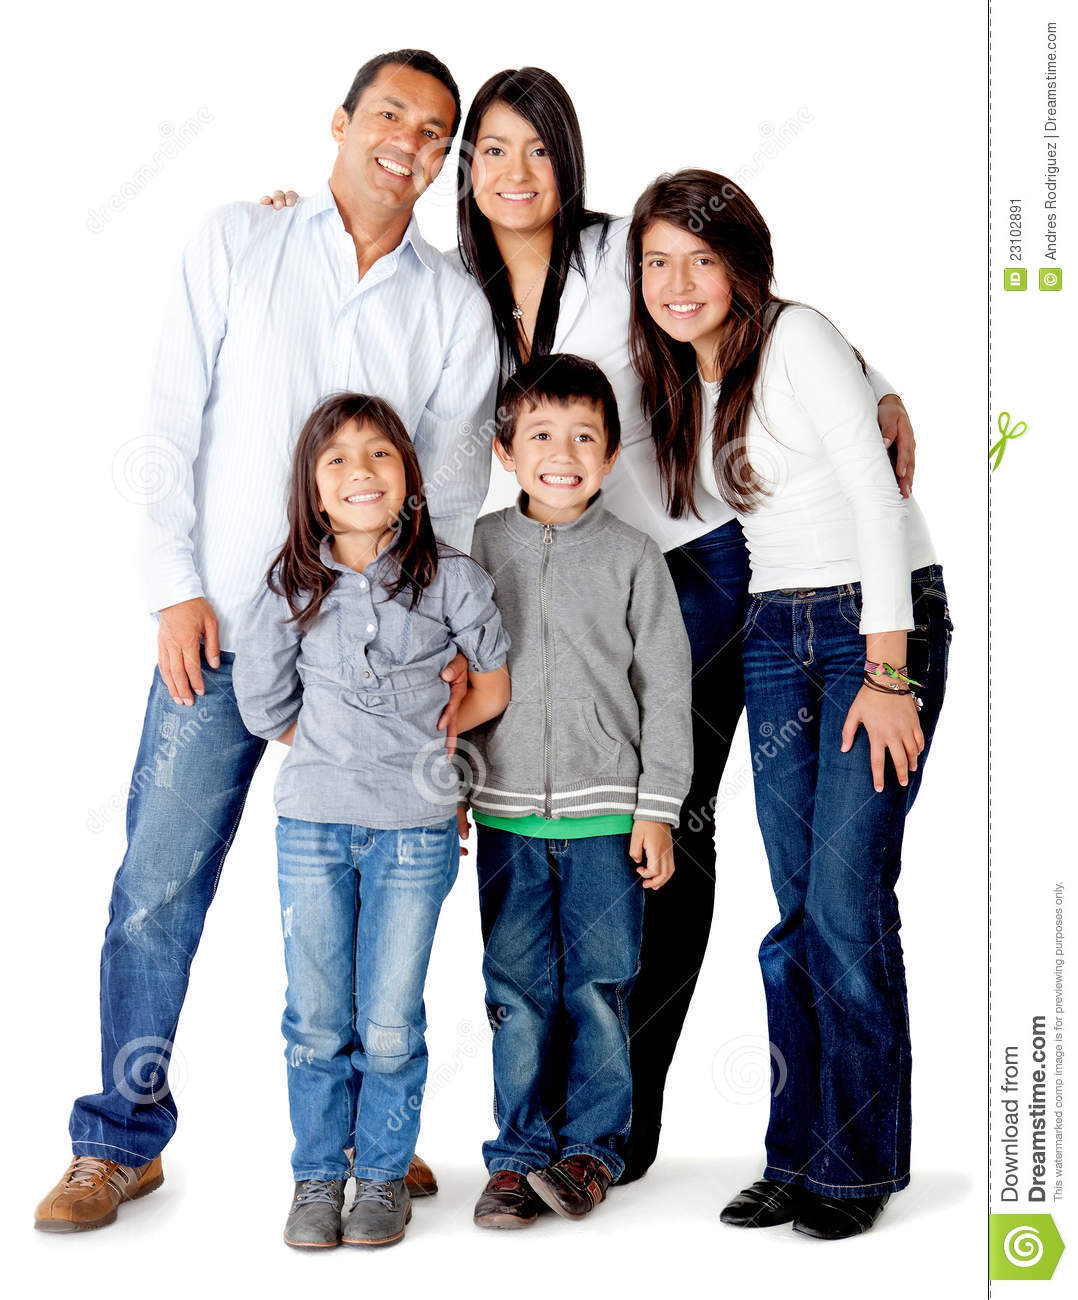 american dreams with the younger family The younger's have continuously experienced victimization at the hands of the american capitalist structure, and so they opt to abandon this model, sacrificing their individual dreams in the process, in order to serve the communal needs of the family itself.